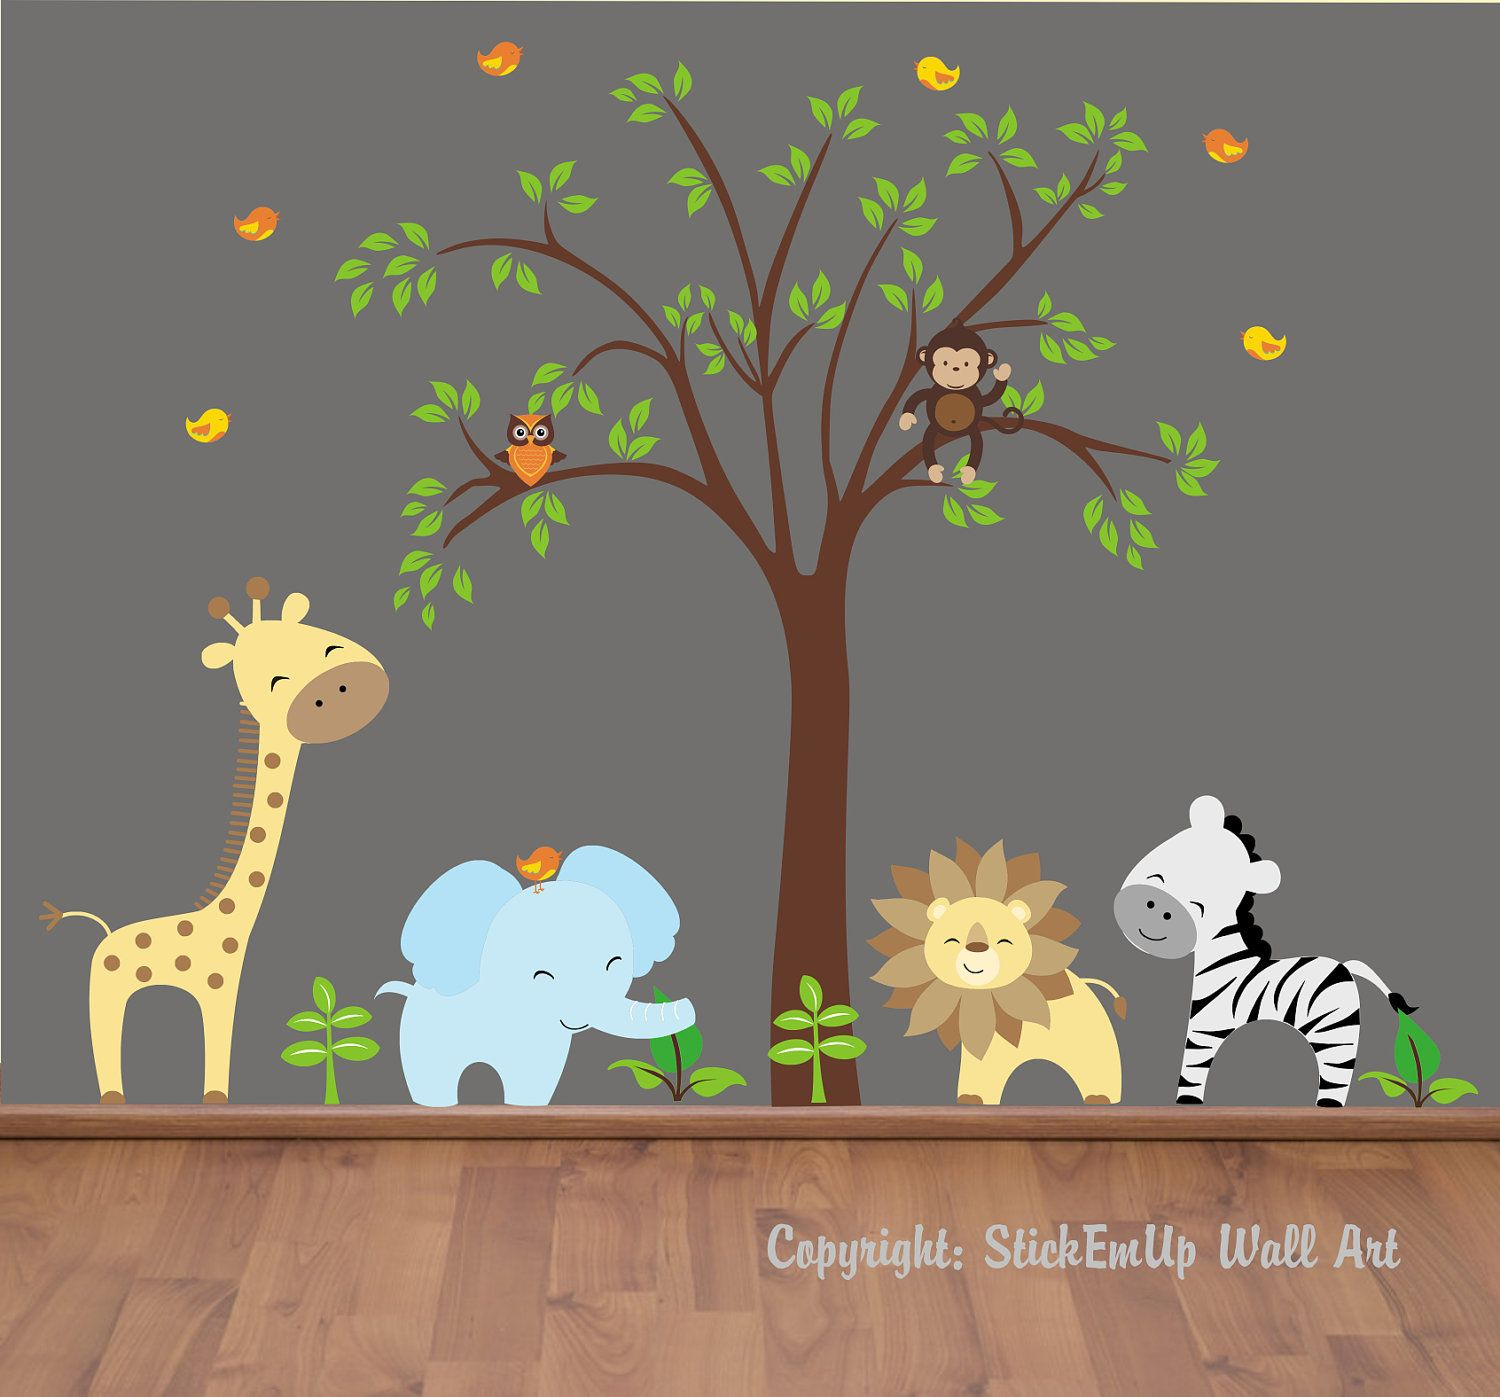 Elephant Twin Nursery Wall Art Nursery Room Decor For Twins: Nursery Wall Decals